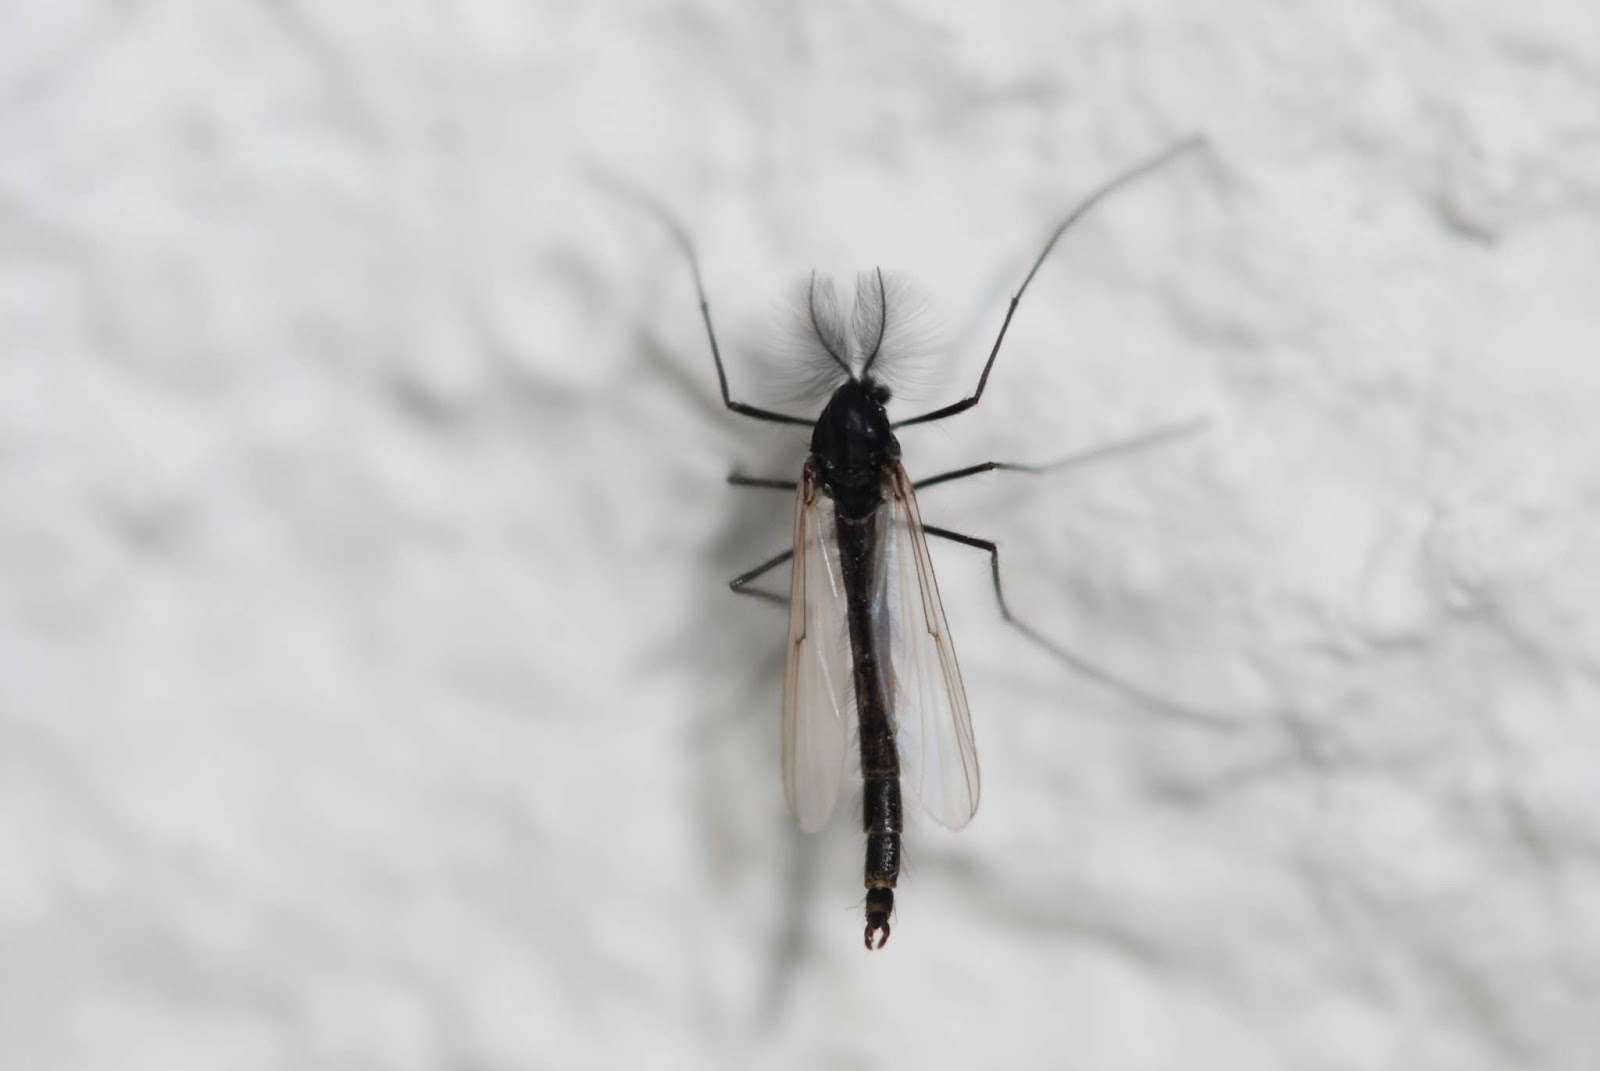 Black flies and midges are out now